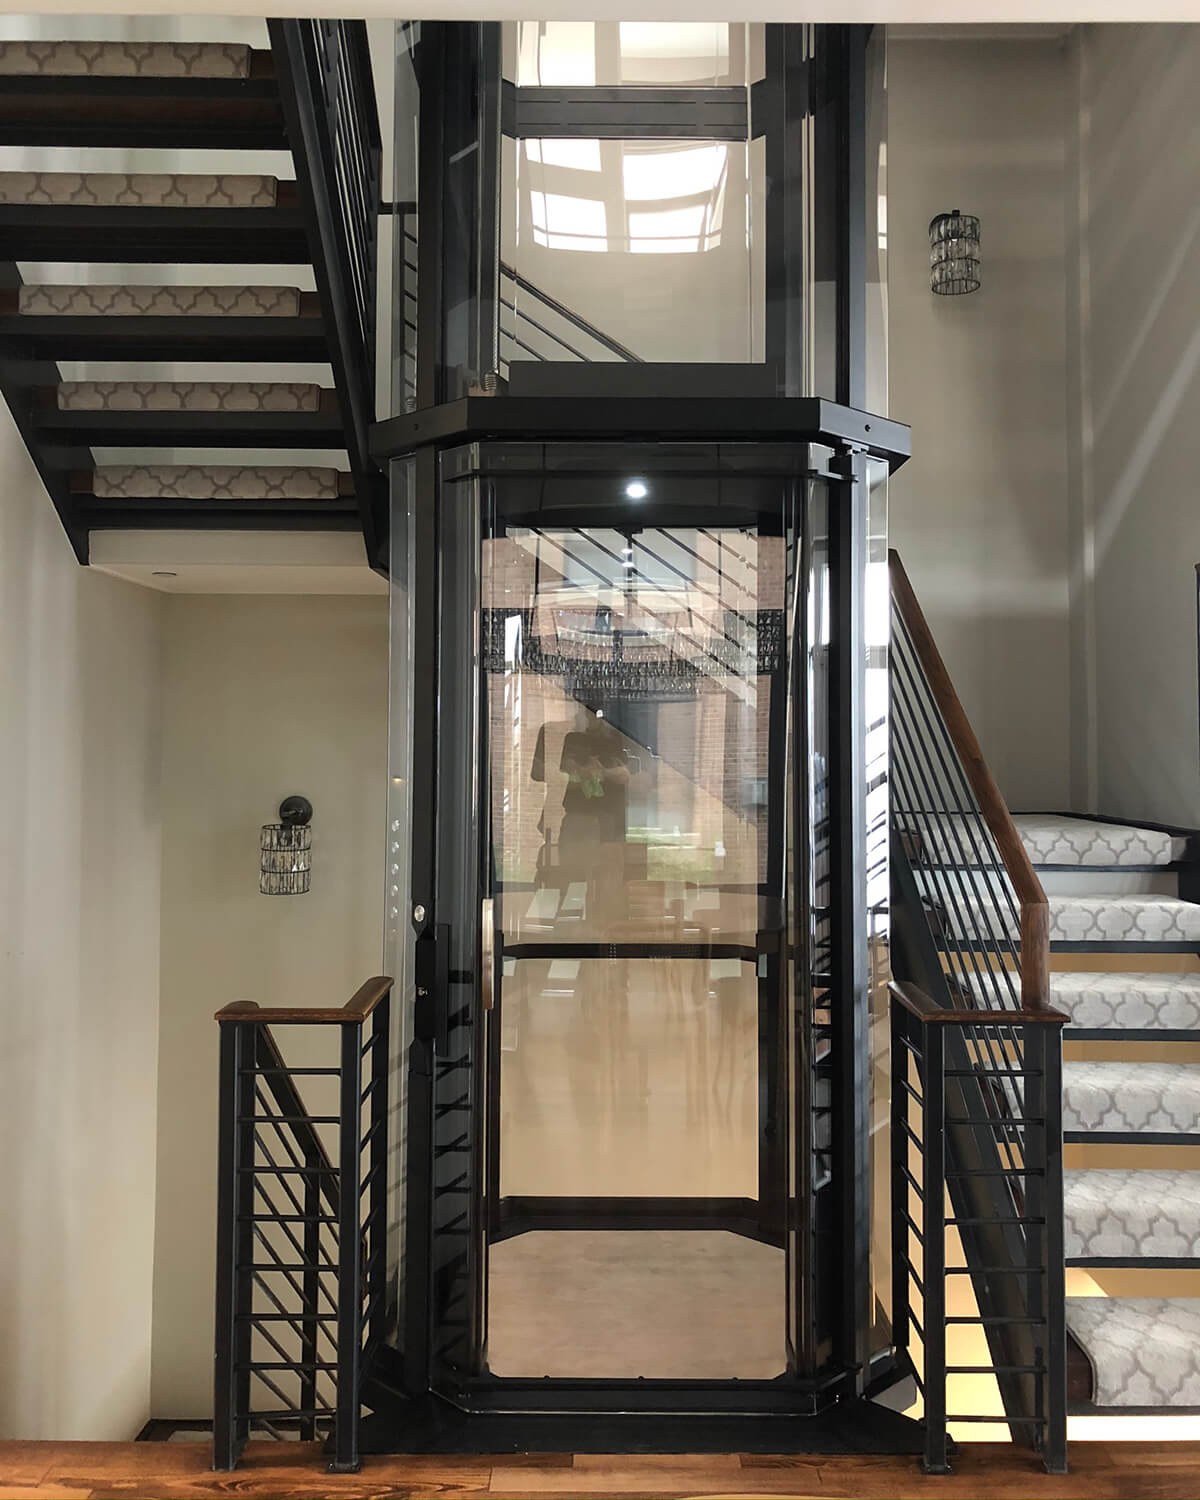 Savaria Octagonal Acrylic Panoramic Home Elevator with black frame installed inside carpeted staircase